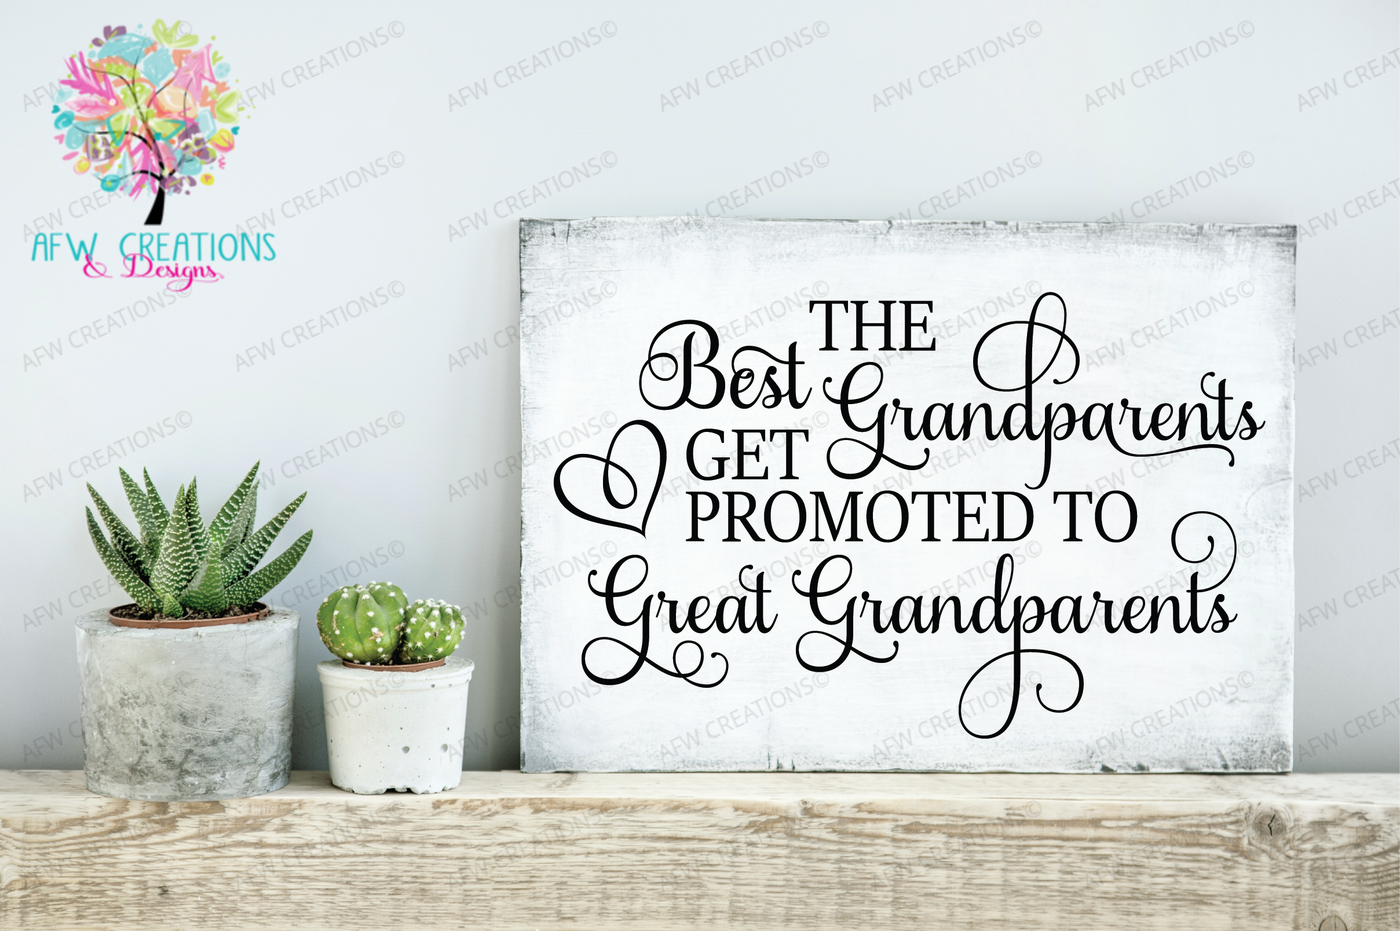 Best Grandparents Get Promoted Svg Dxf Eps Cut Files By Afw